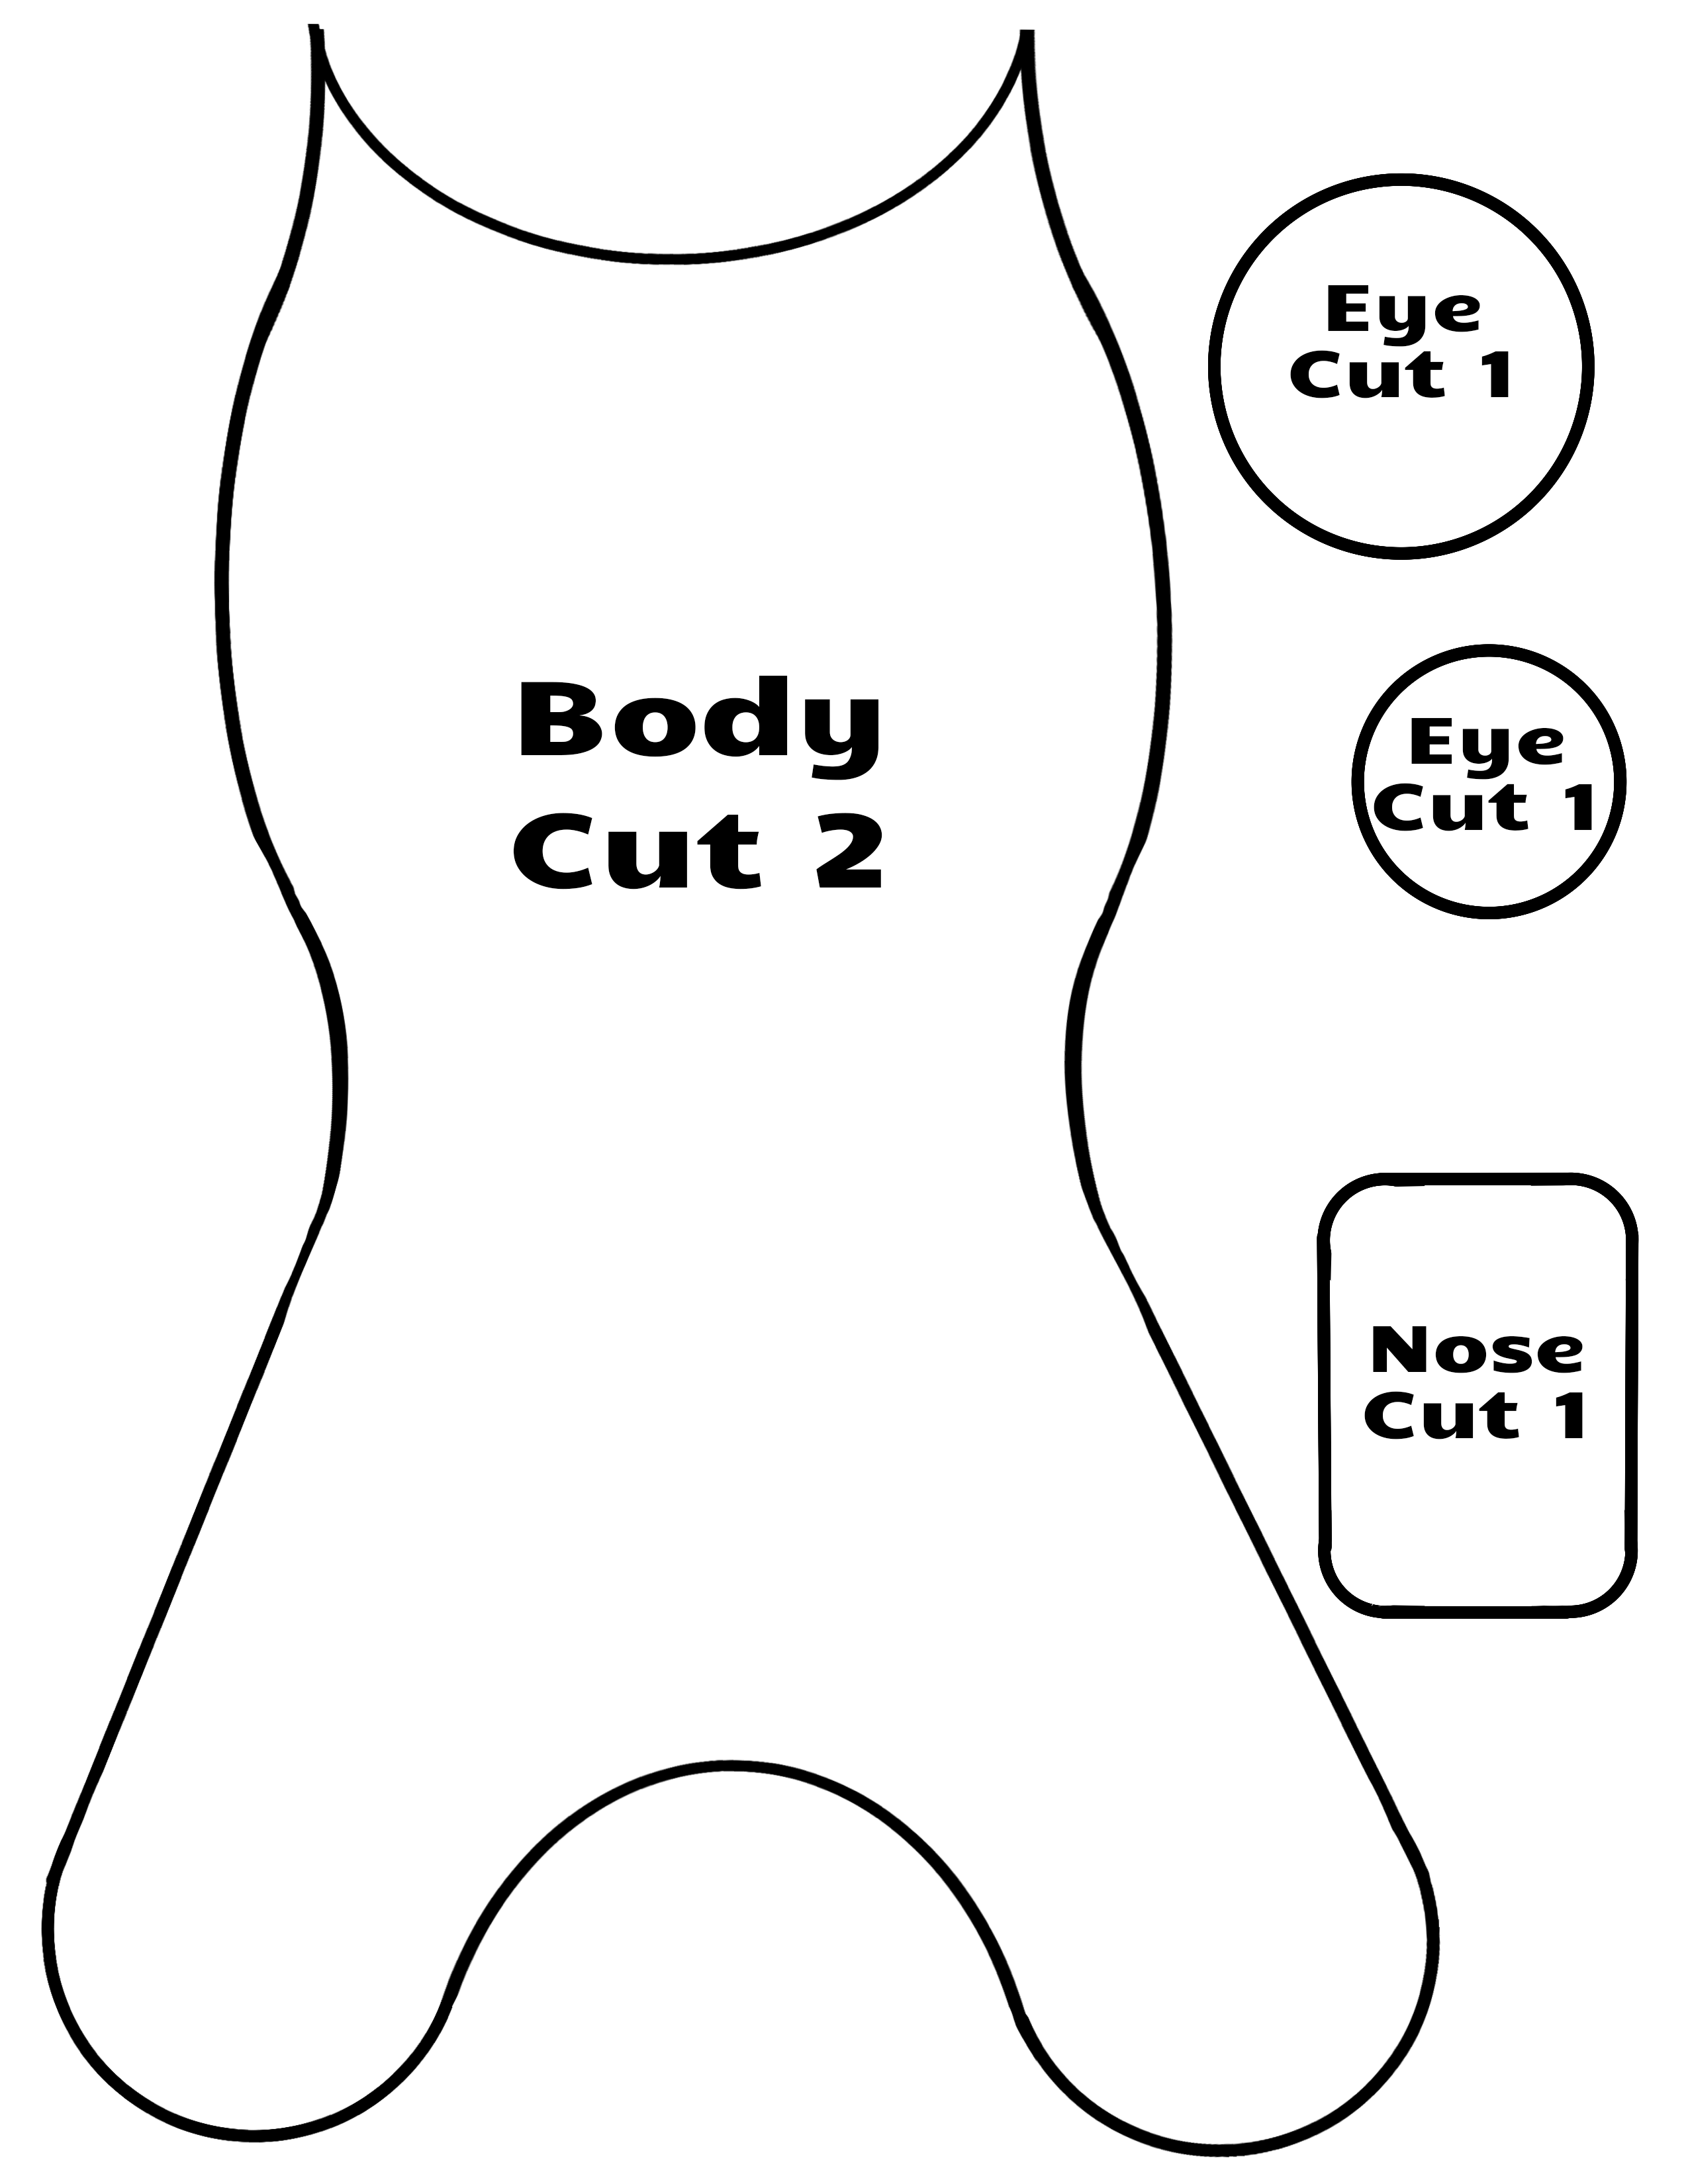 Easy Printable Dog Toy Pattern For Homemade Dog Toys To